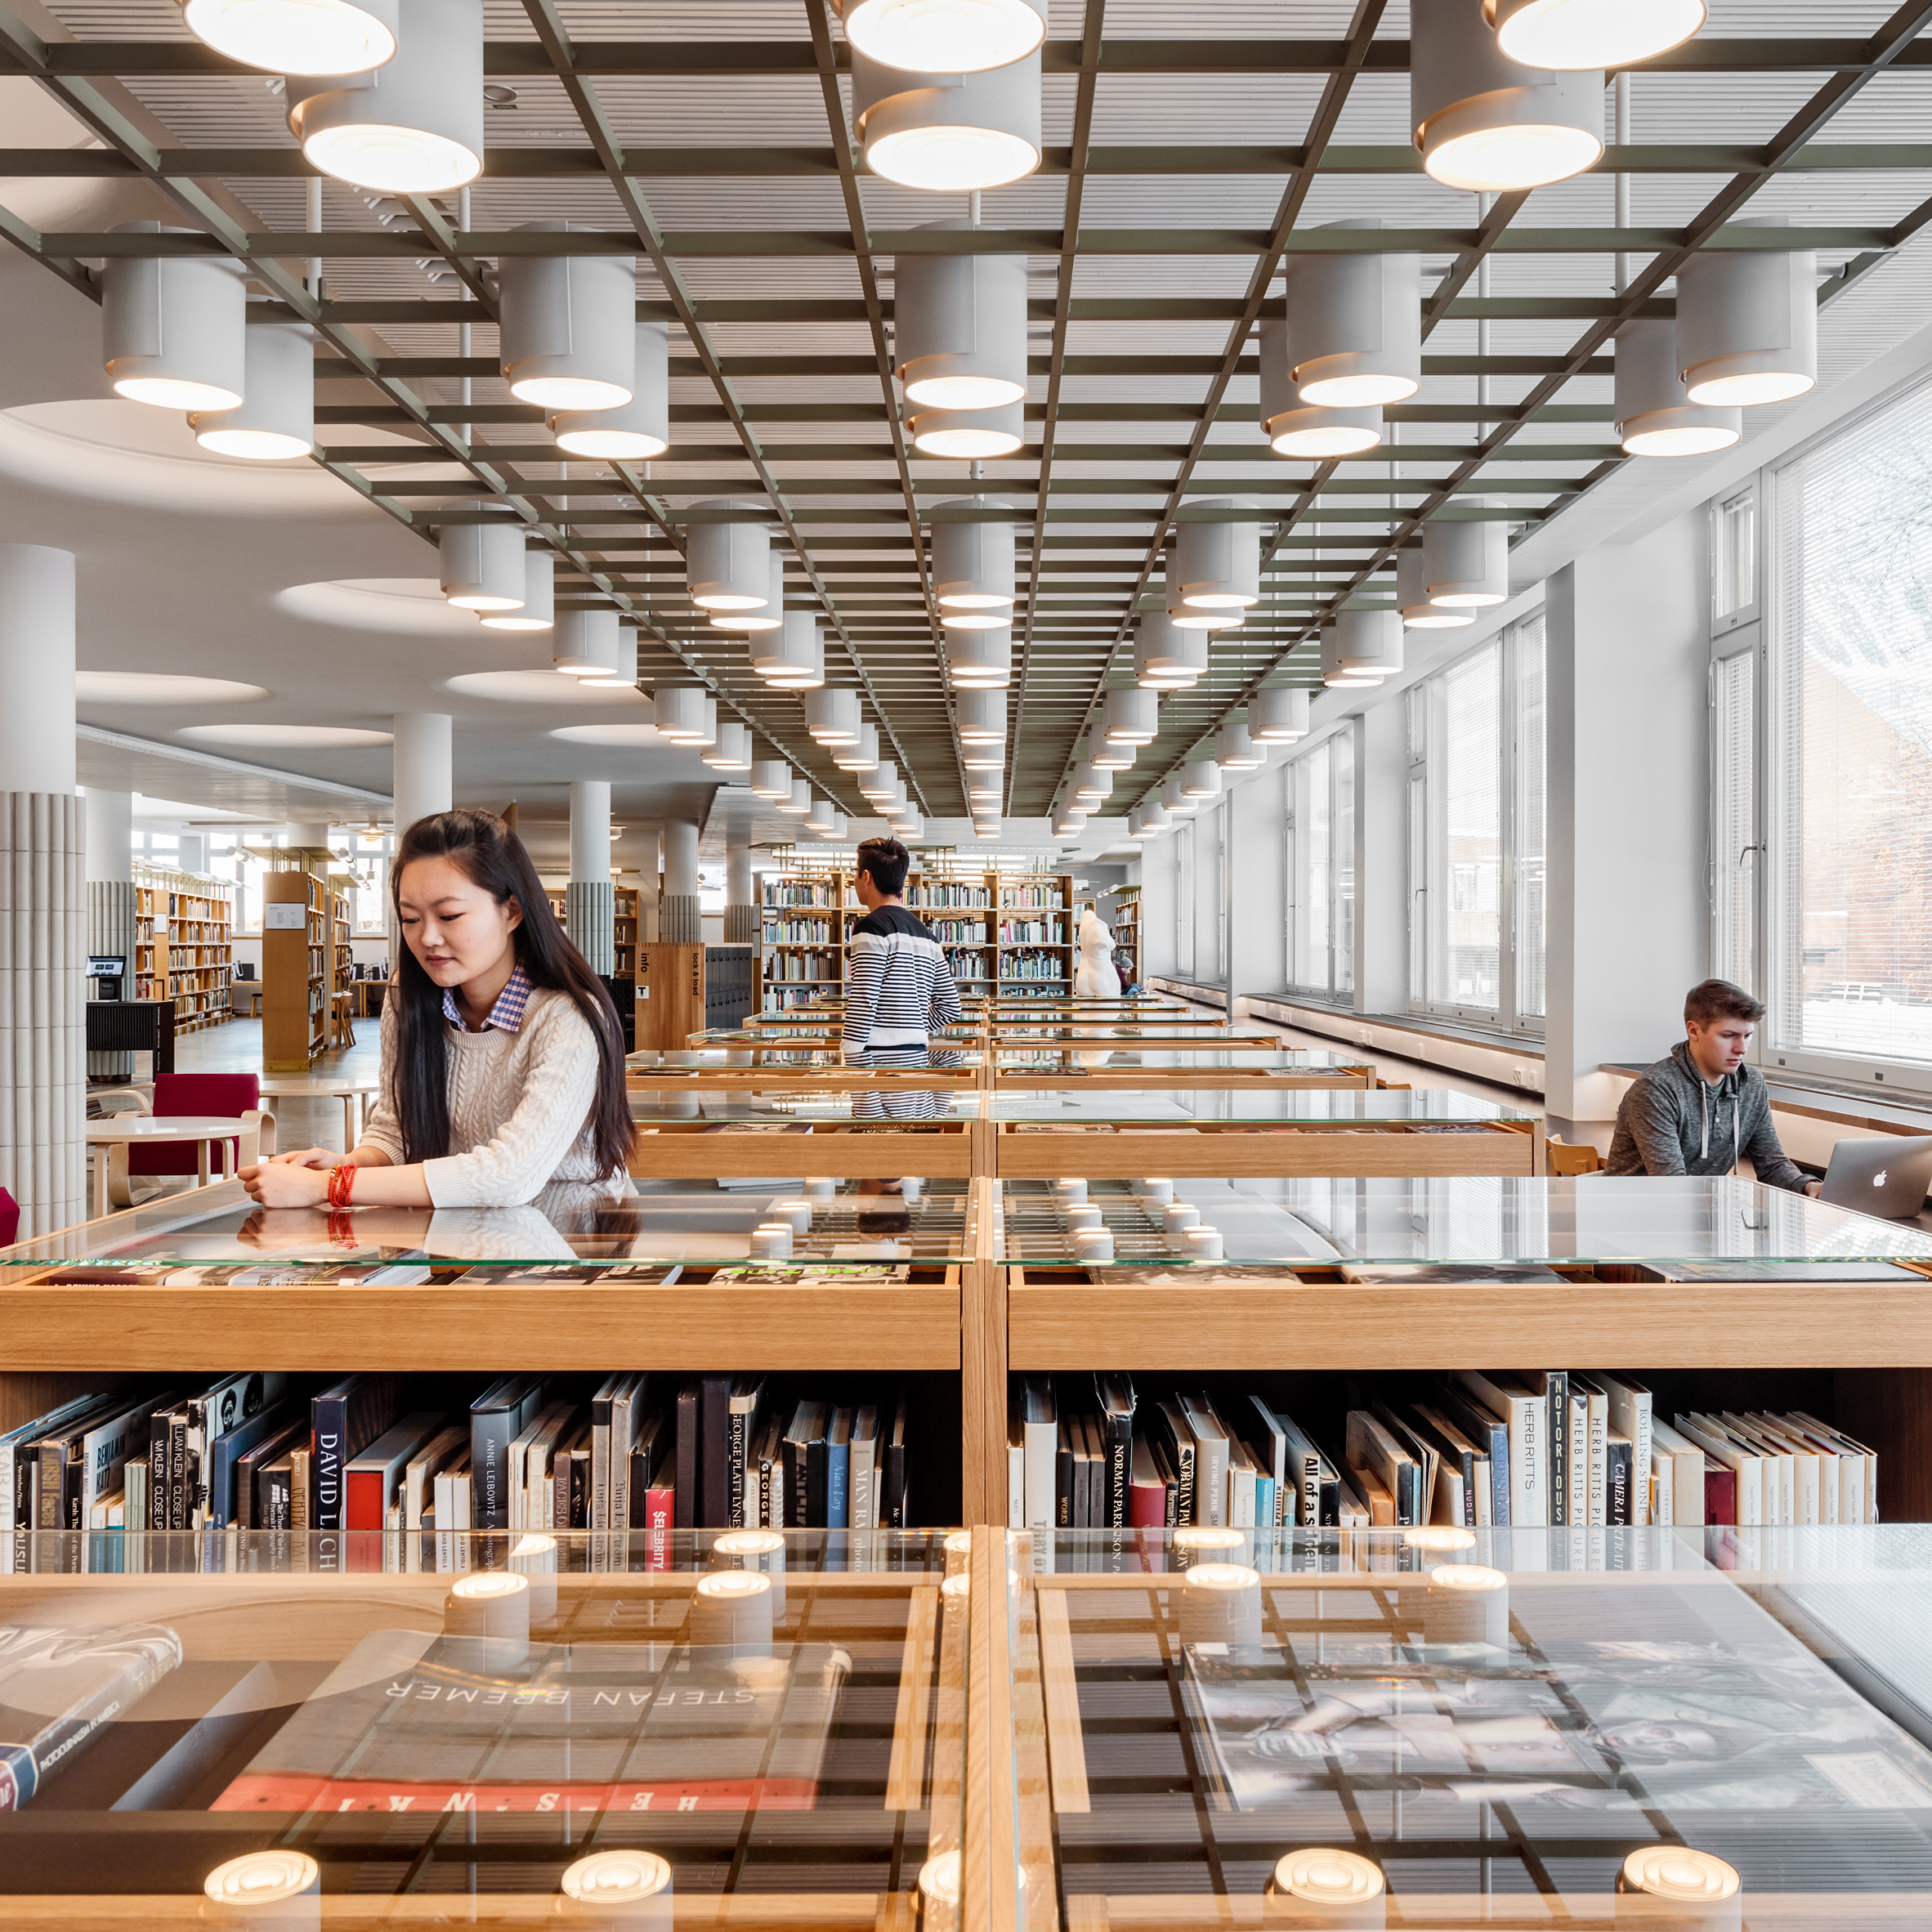 Alvar Aalto Library Renovation Wins Finlandia Prize For Architecture 2017